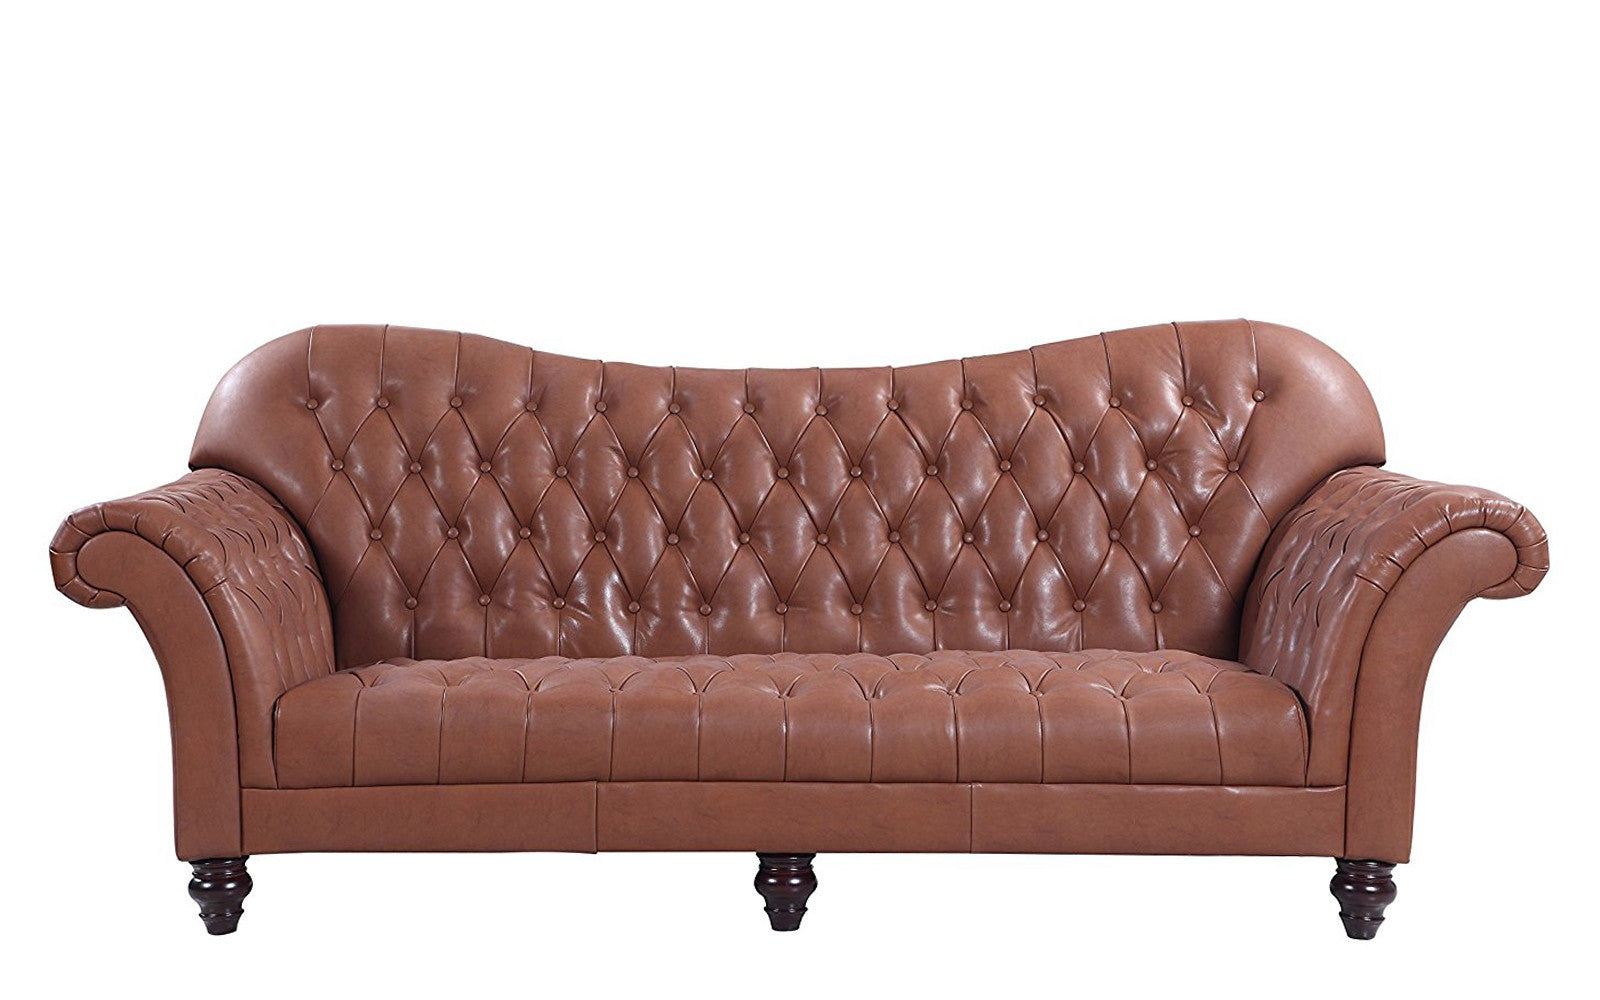 Great ... Diana Classic Victorian Italian Leather Sofa In Light Brown ...